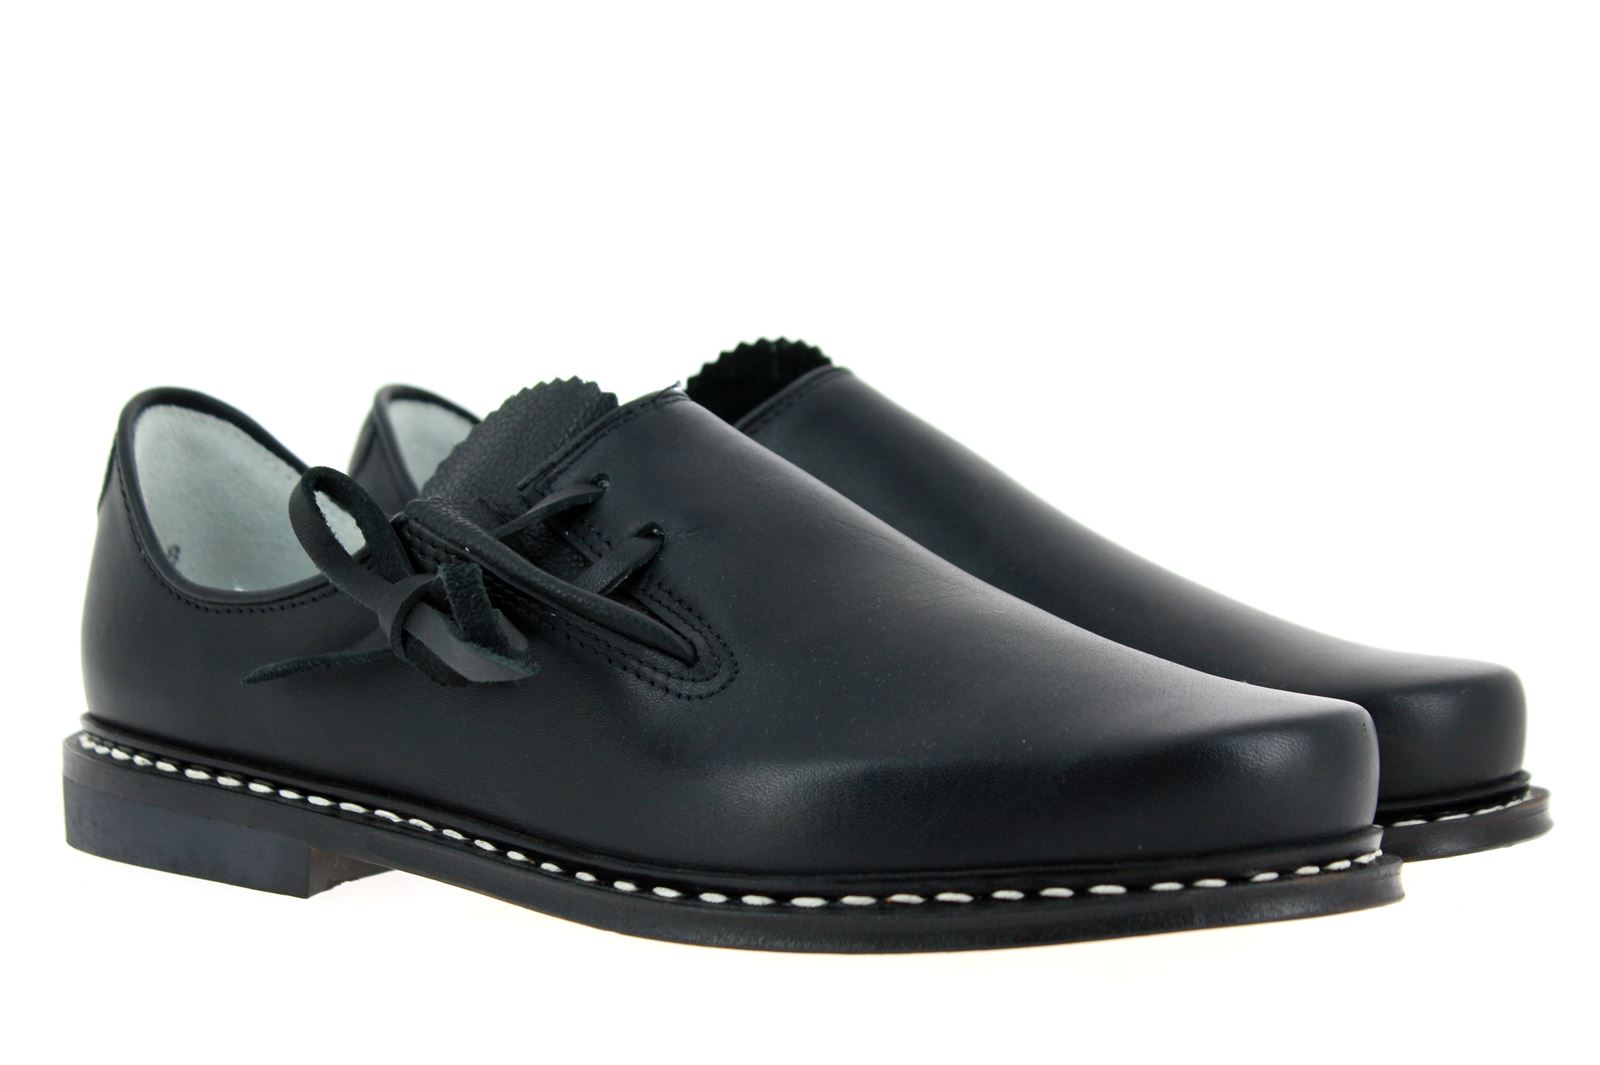 Meindl Traditional Shoe KÖSSEN BLACK BOXCALF